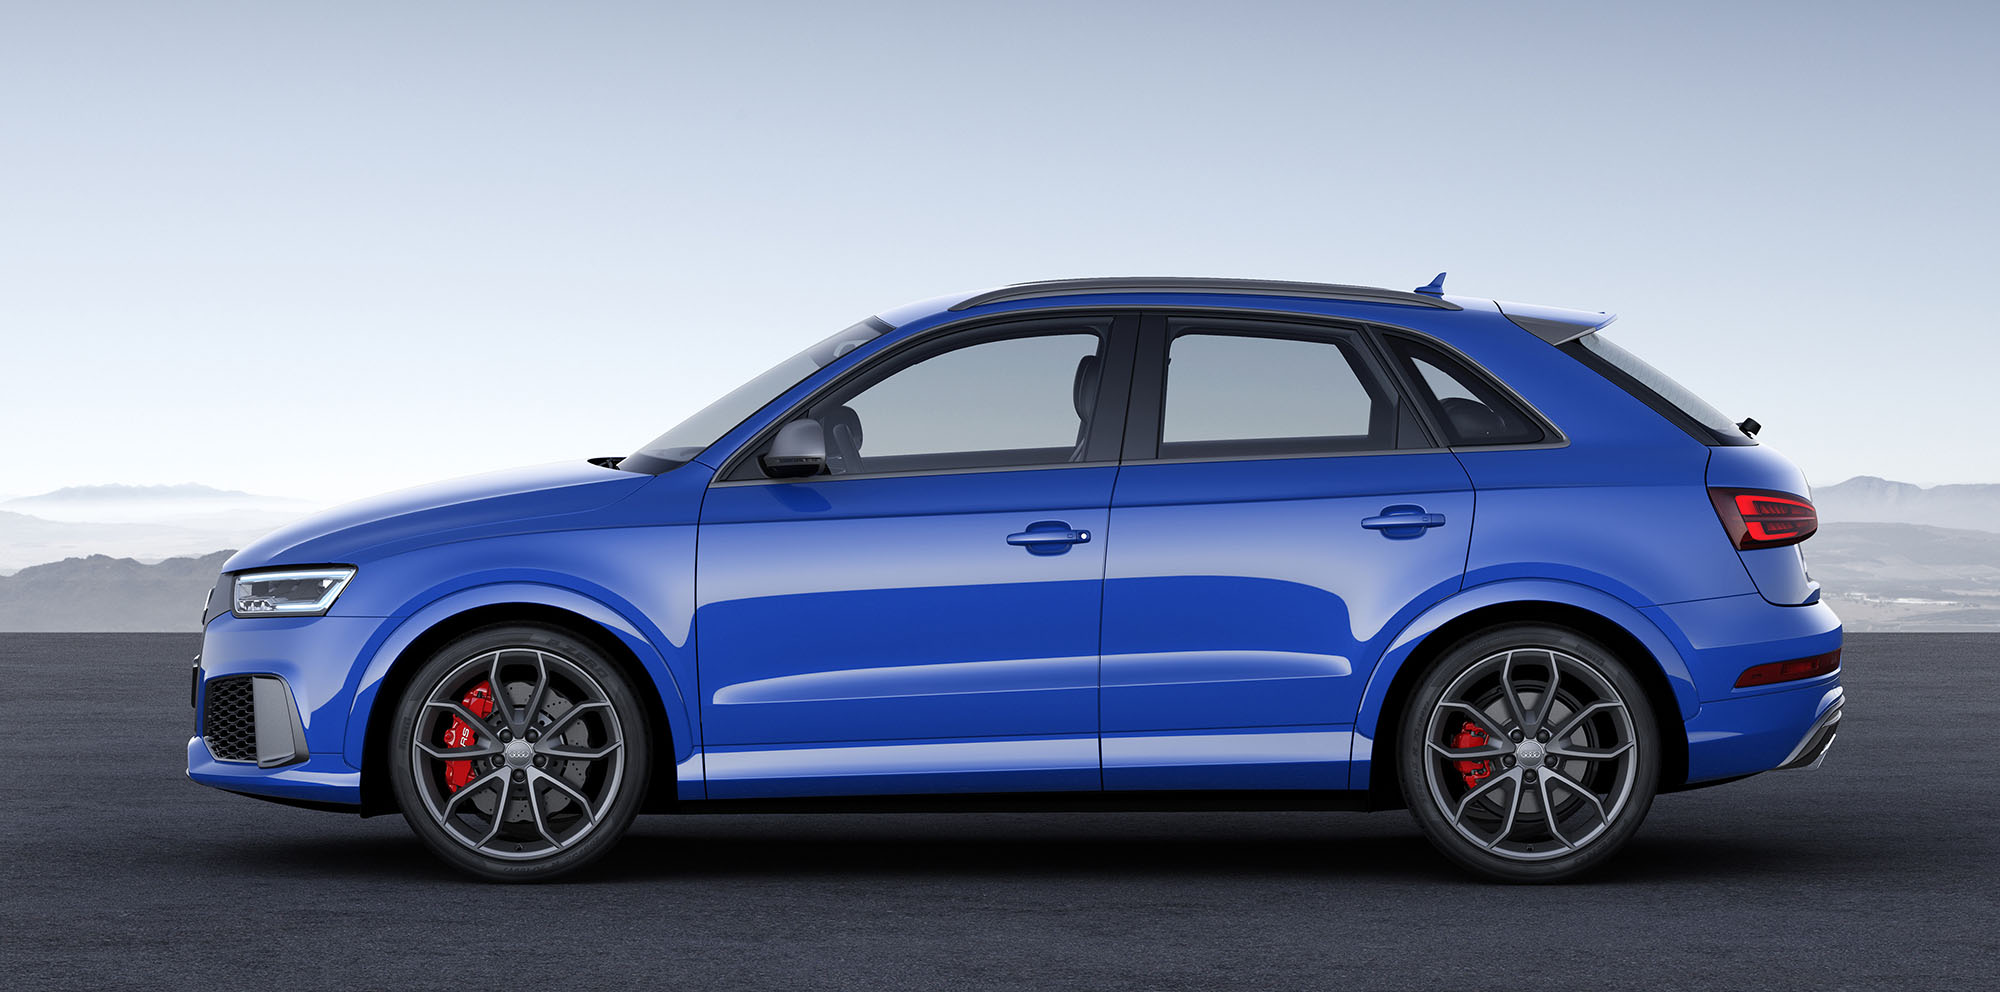 2017 audi rs q3 performance revealed australian debut later this year photos 1 of 6. Black Bedroom Furniture Sets. Home Design Ideas